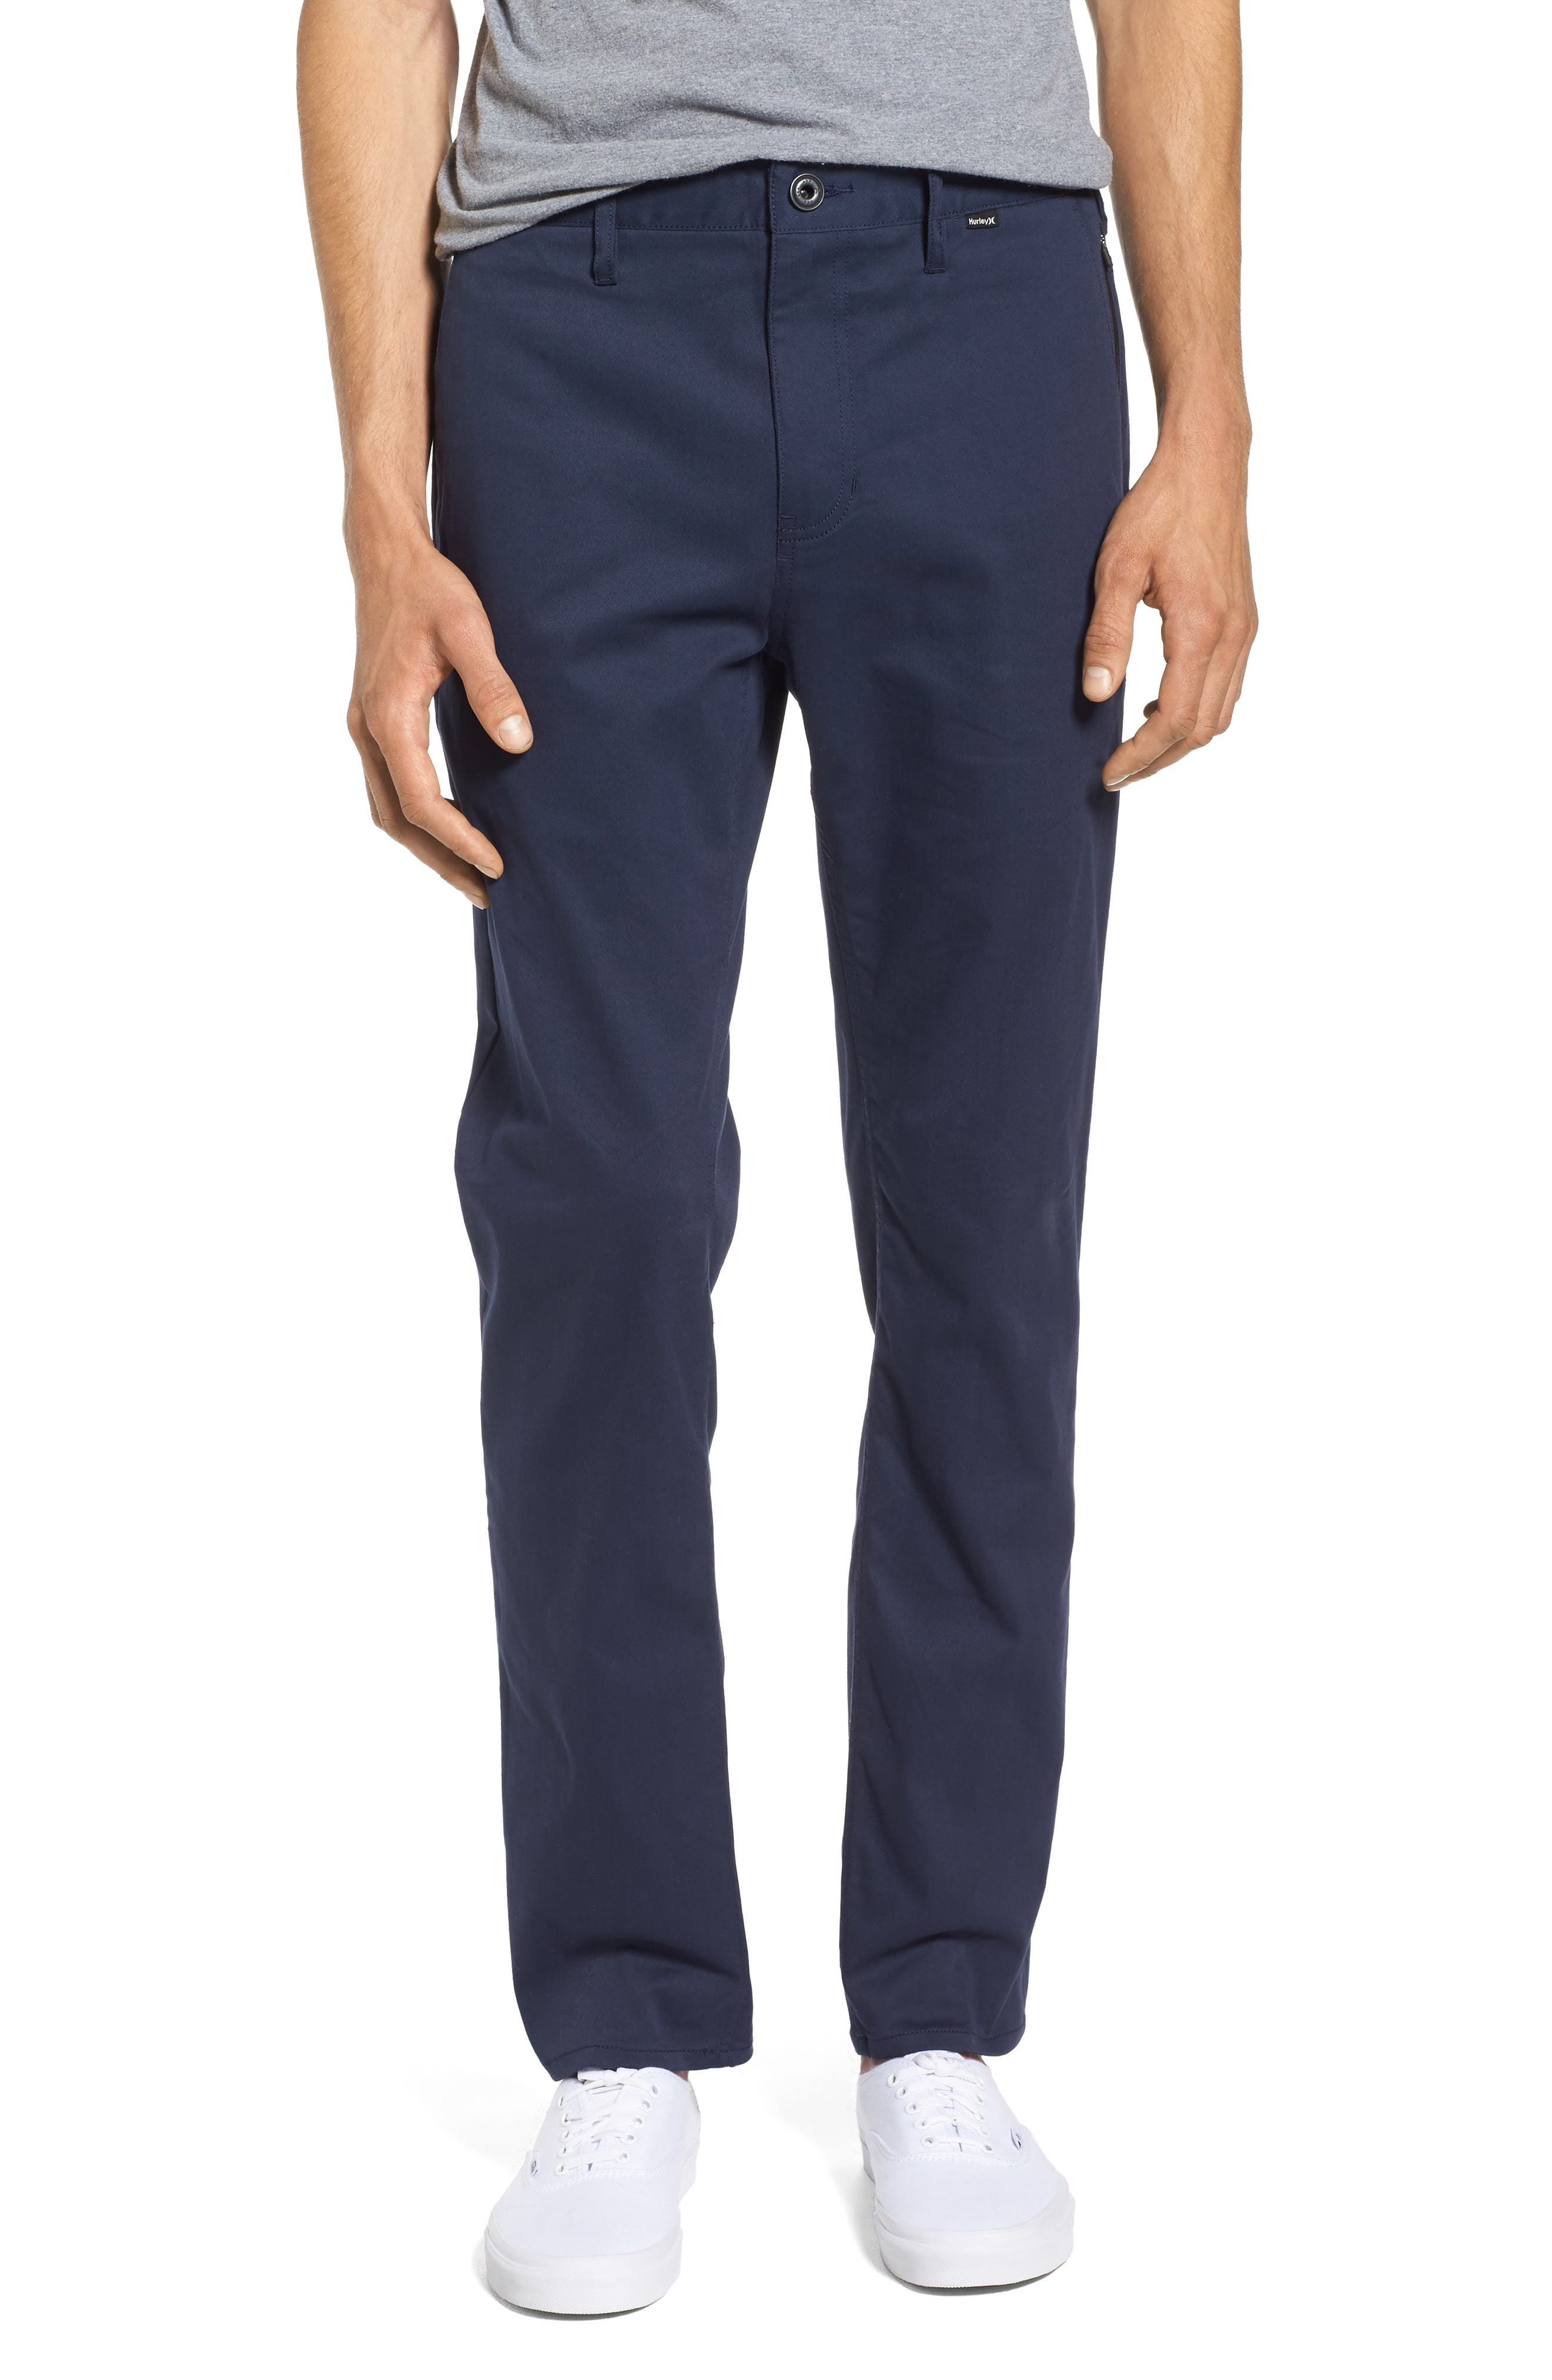 Dri-FIT Chinos,                         Main,                         color, Obsidian